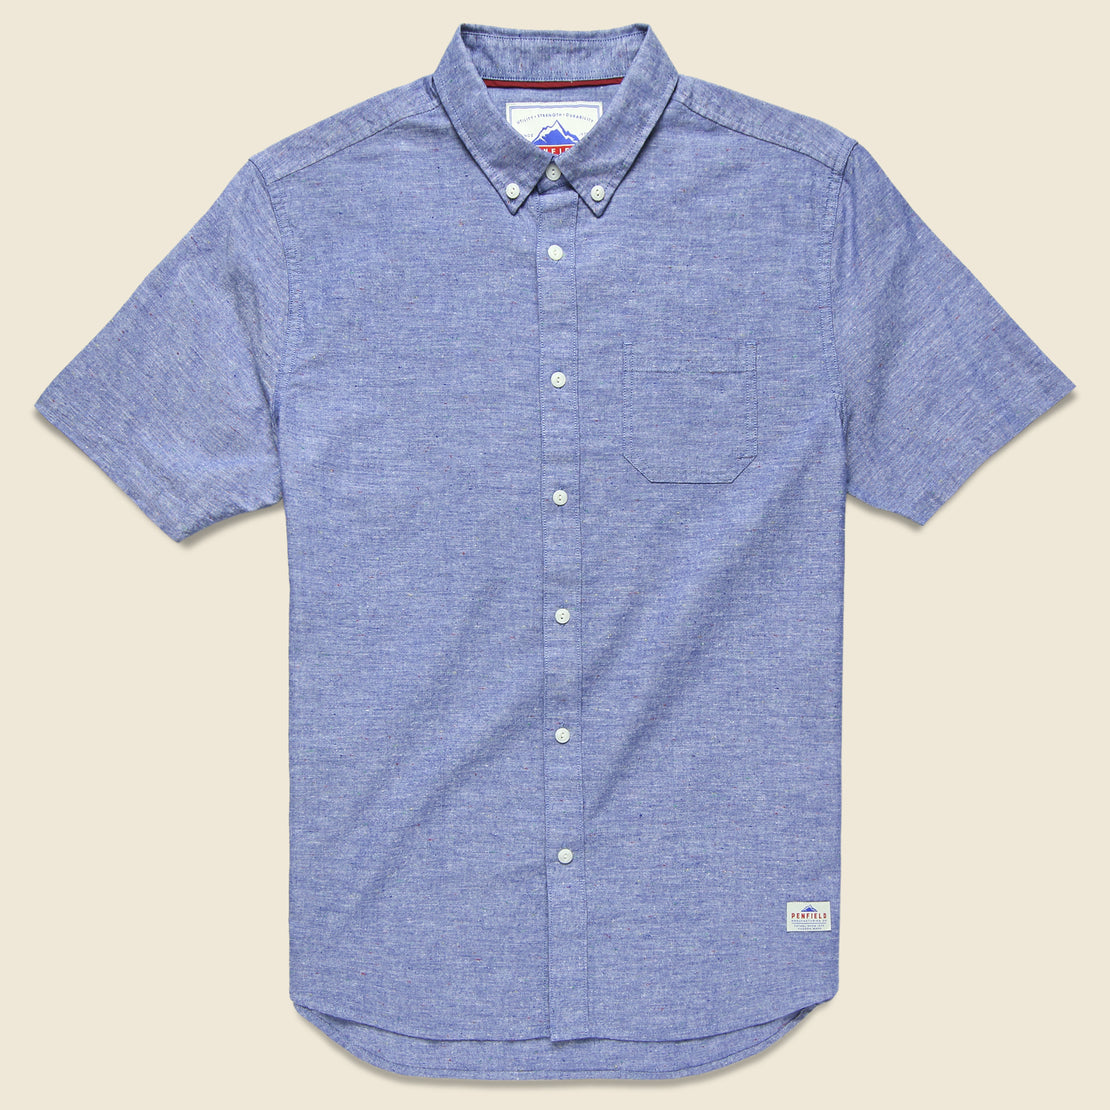 Penfield Hadley Shirt - Blue